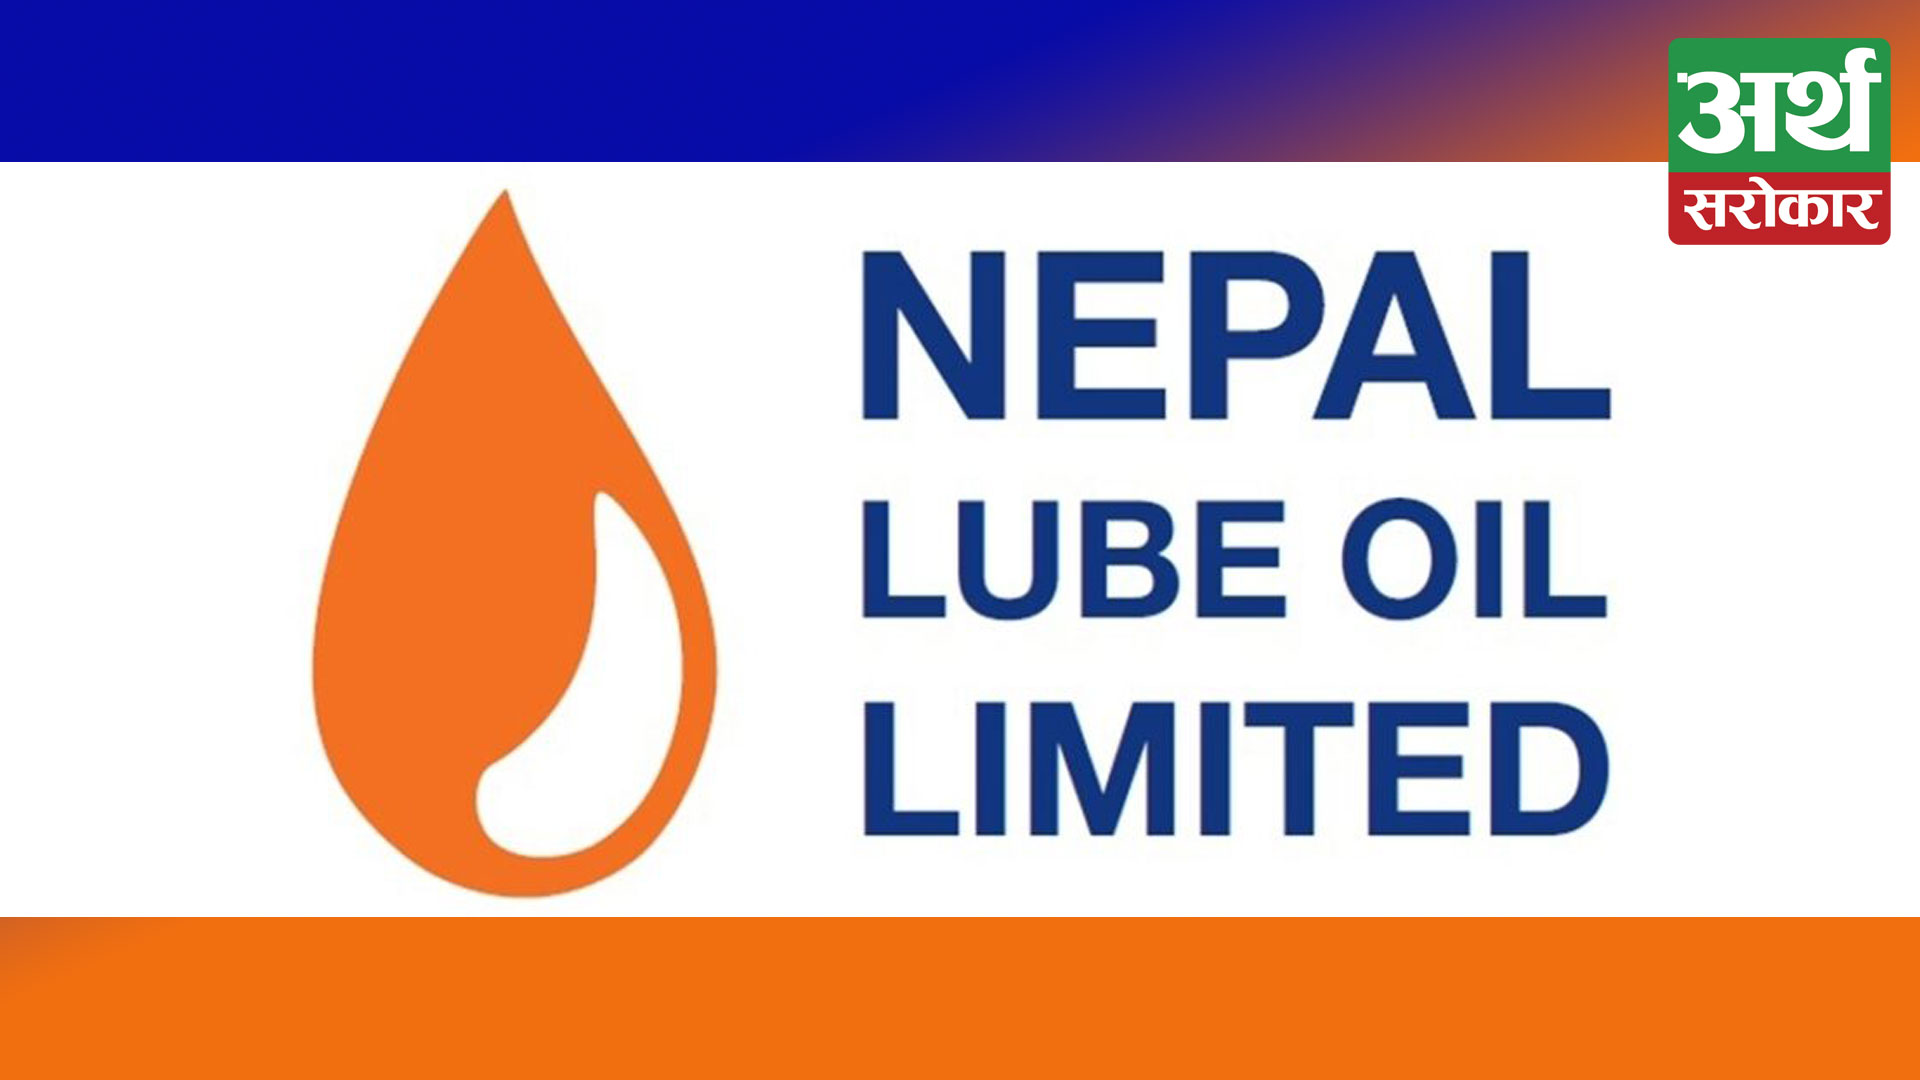 30th Annual General Meet of Nepal Lube Oil Concluded